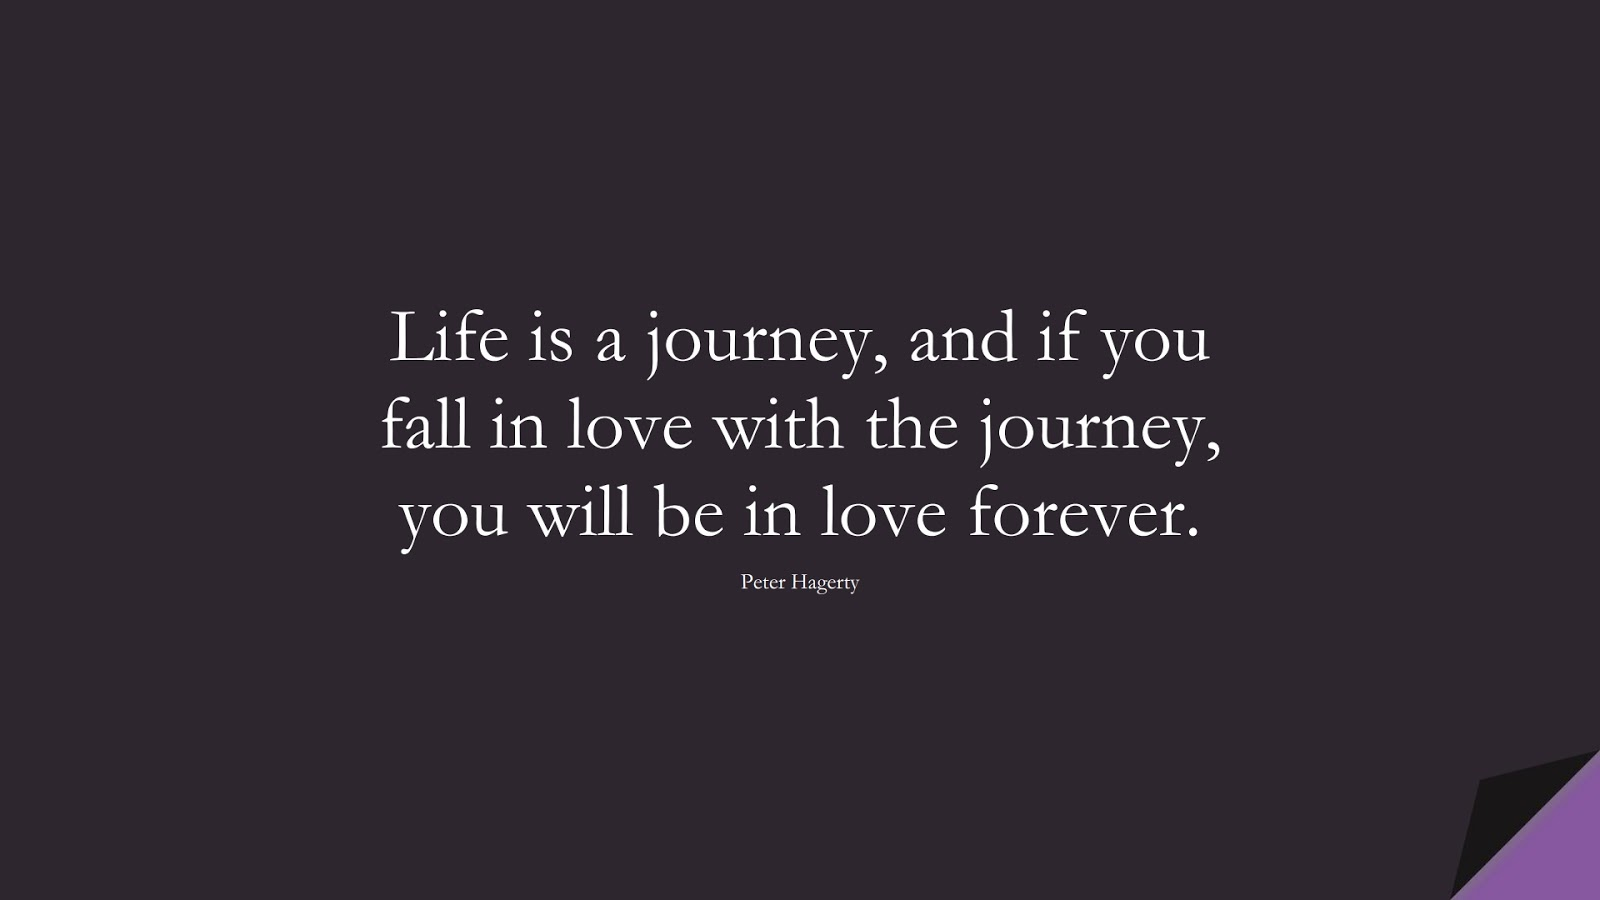 Life is a journey, and if you fall in love with the journey, you will be in love forever. (Peter Hagerty);  #HappinessQuotes